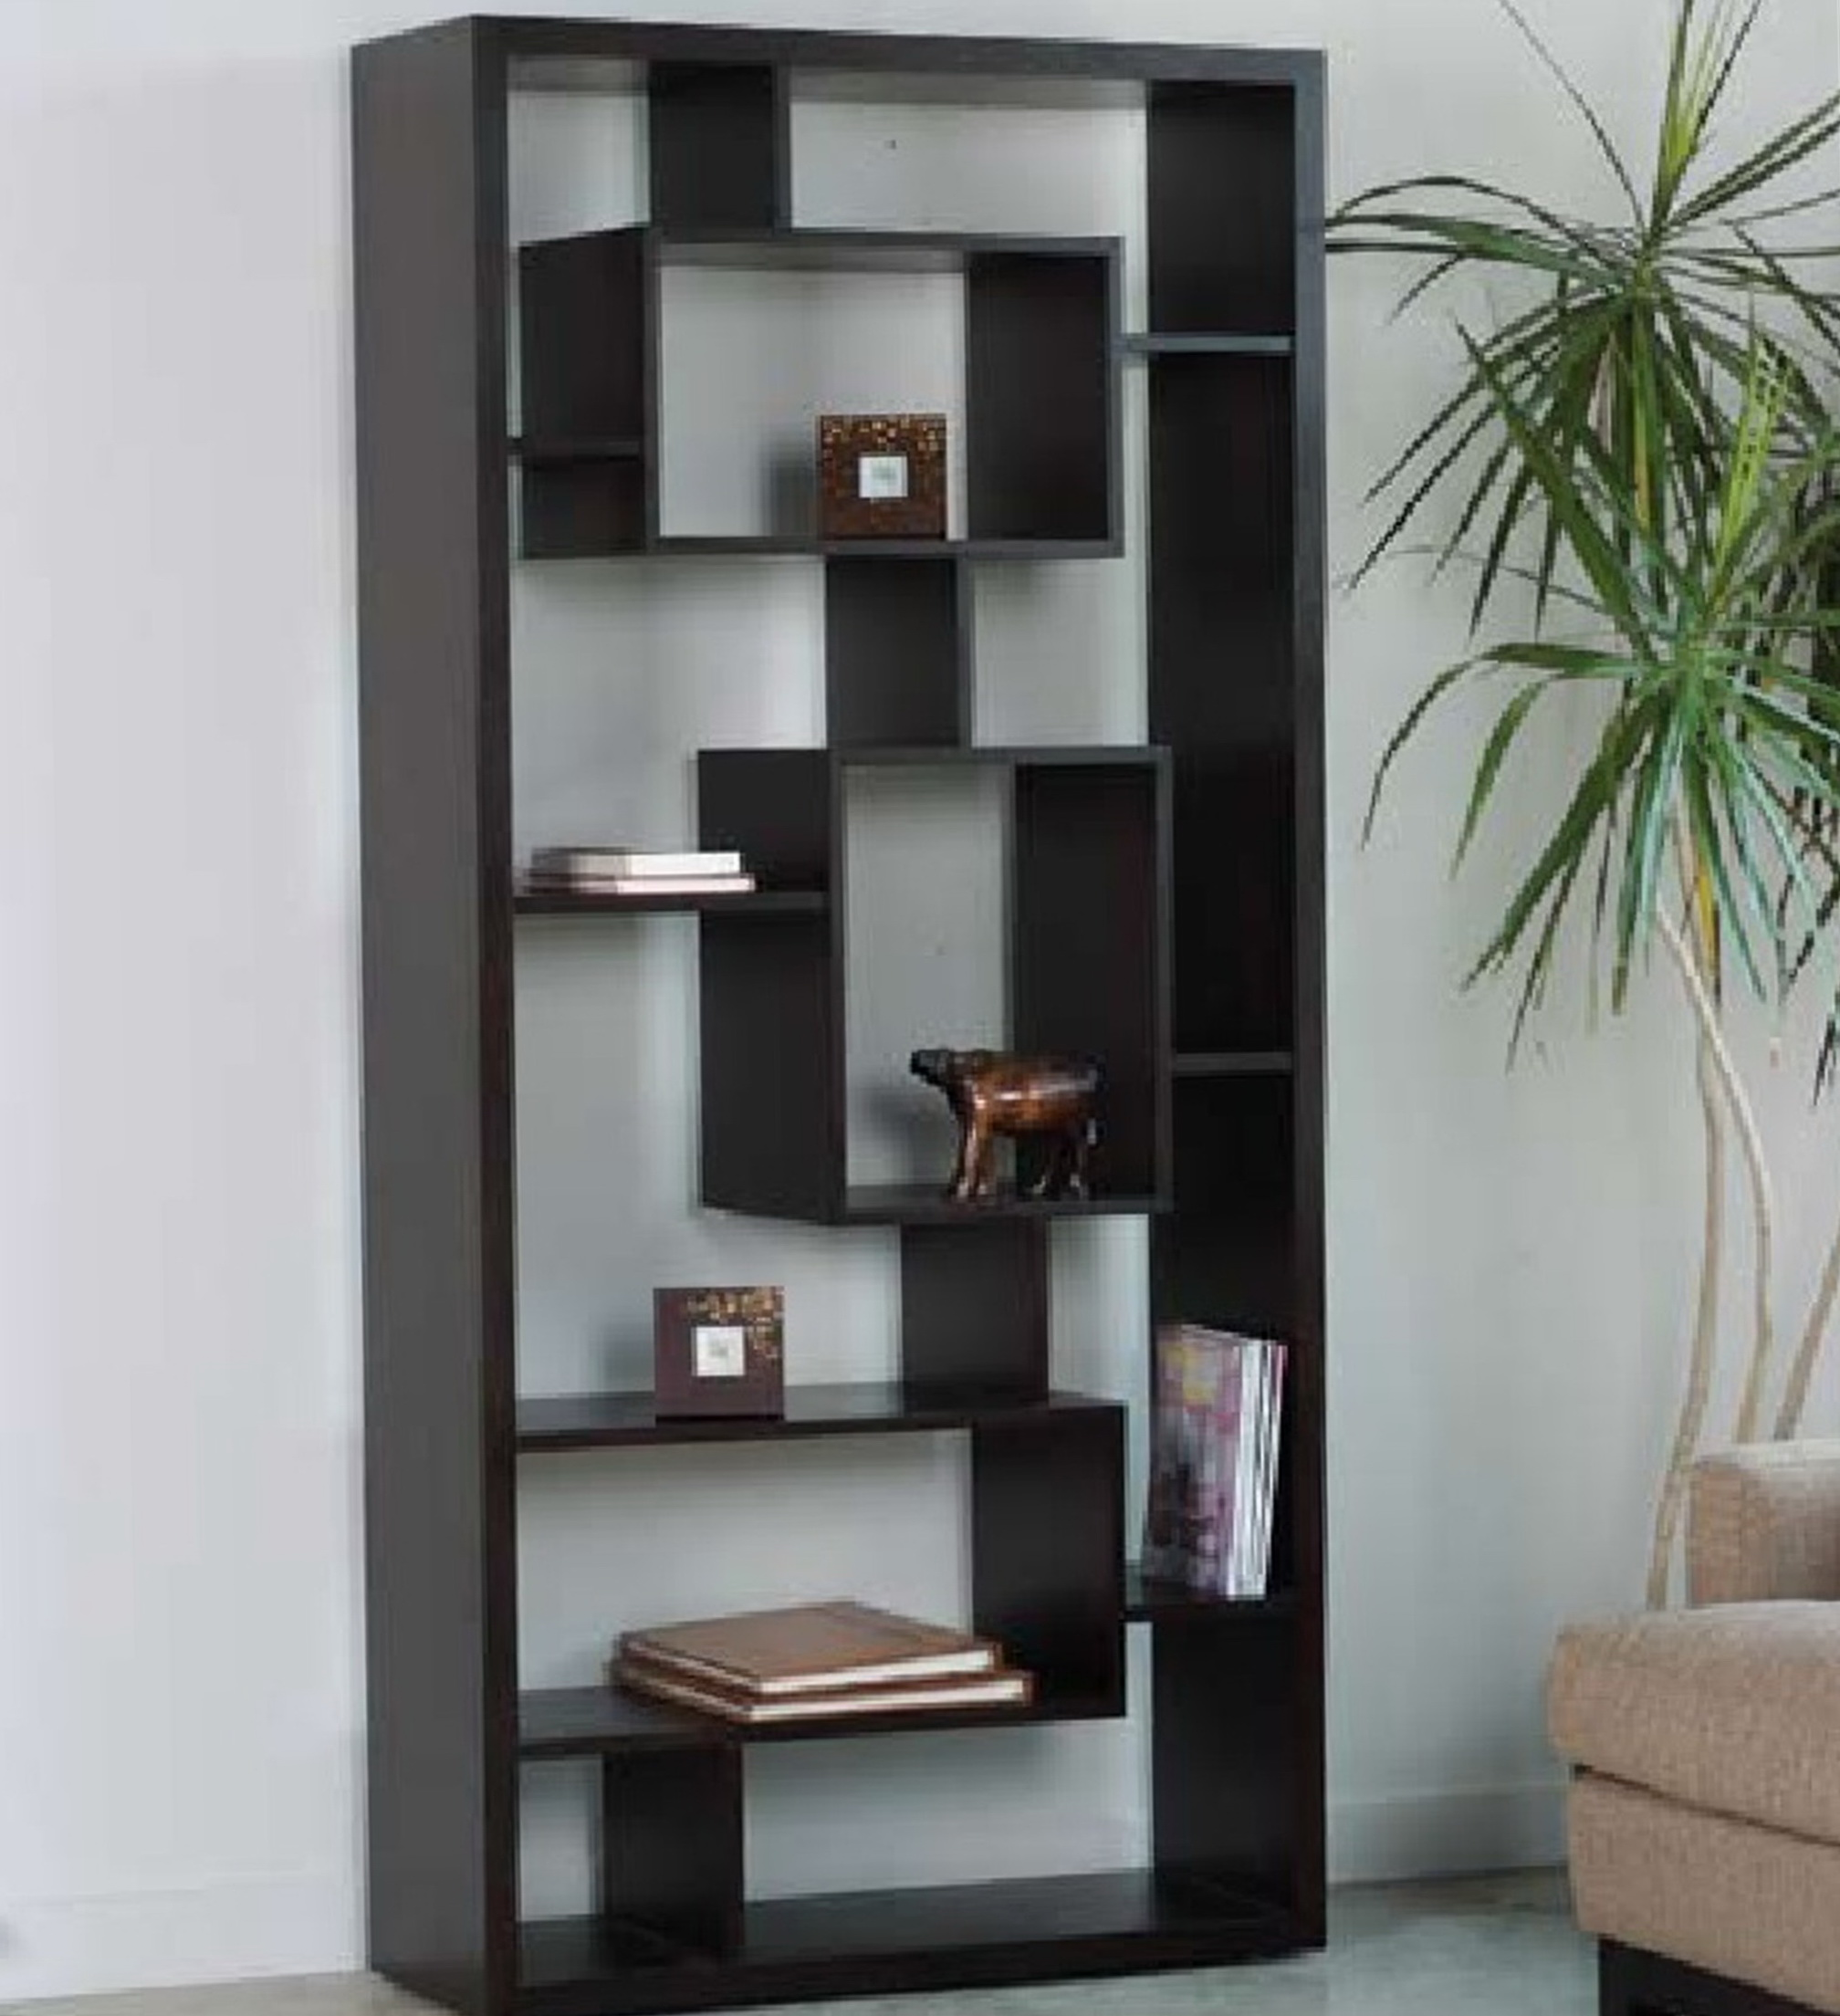 Wall Mounted Bookshelves